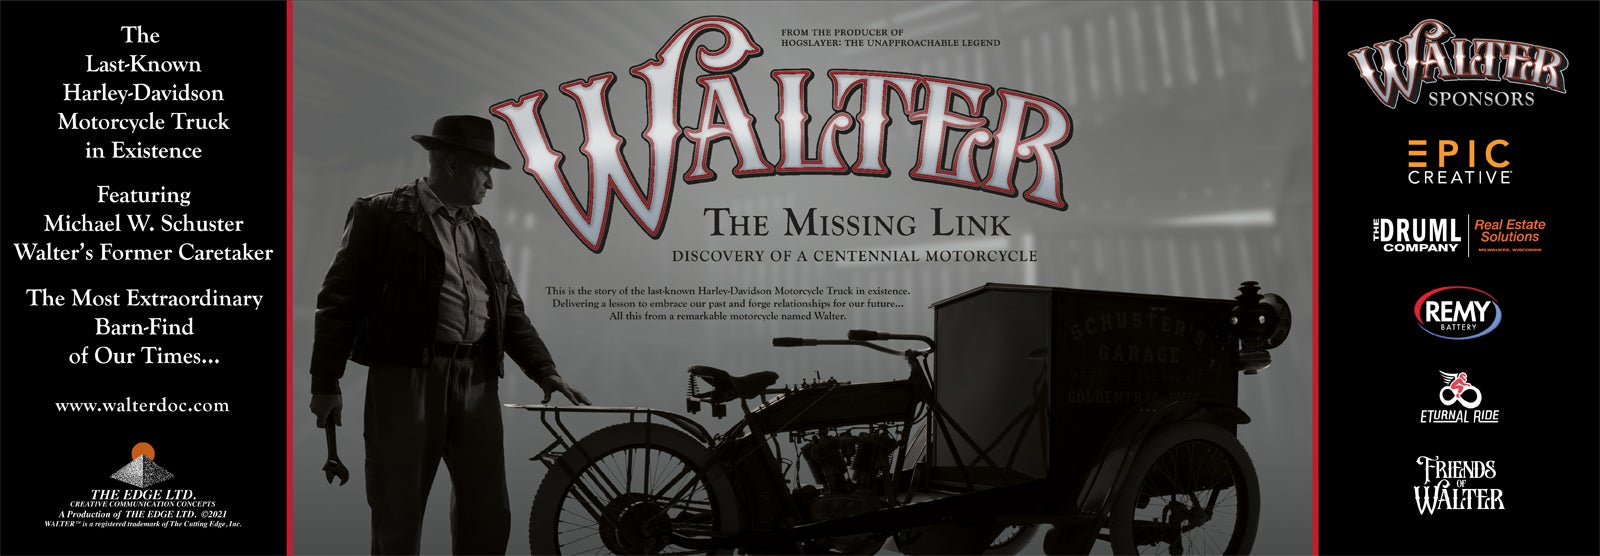 Walter: The Missing Link Discovery of a Centennial Motorcycle